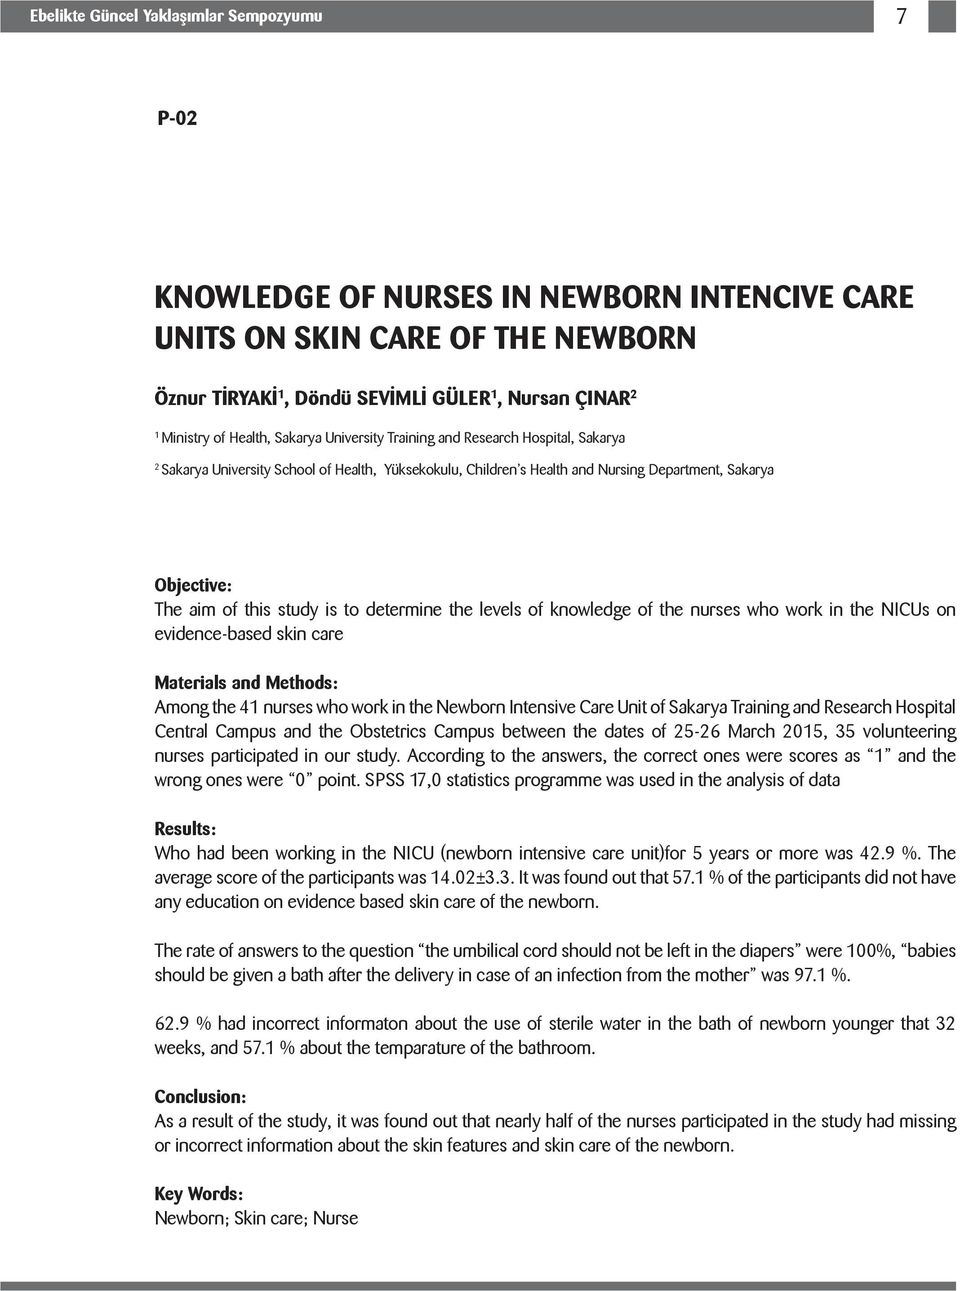 determine the levels of knowledge of the nurses who work in the NICUs on evidence-based skin care Materials and Methods: Among the 4 nurses who work in the Newborn Intensive Care Unit of Sakarya